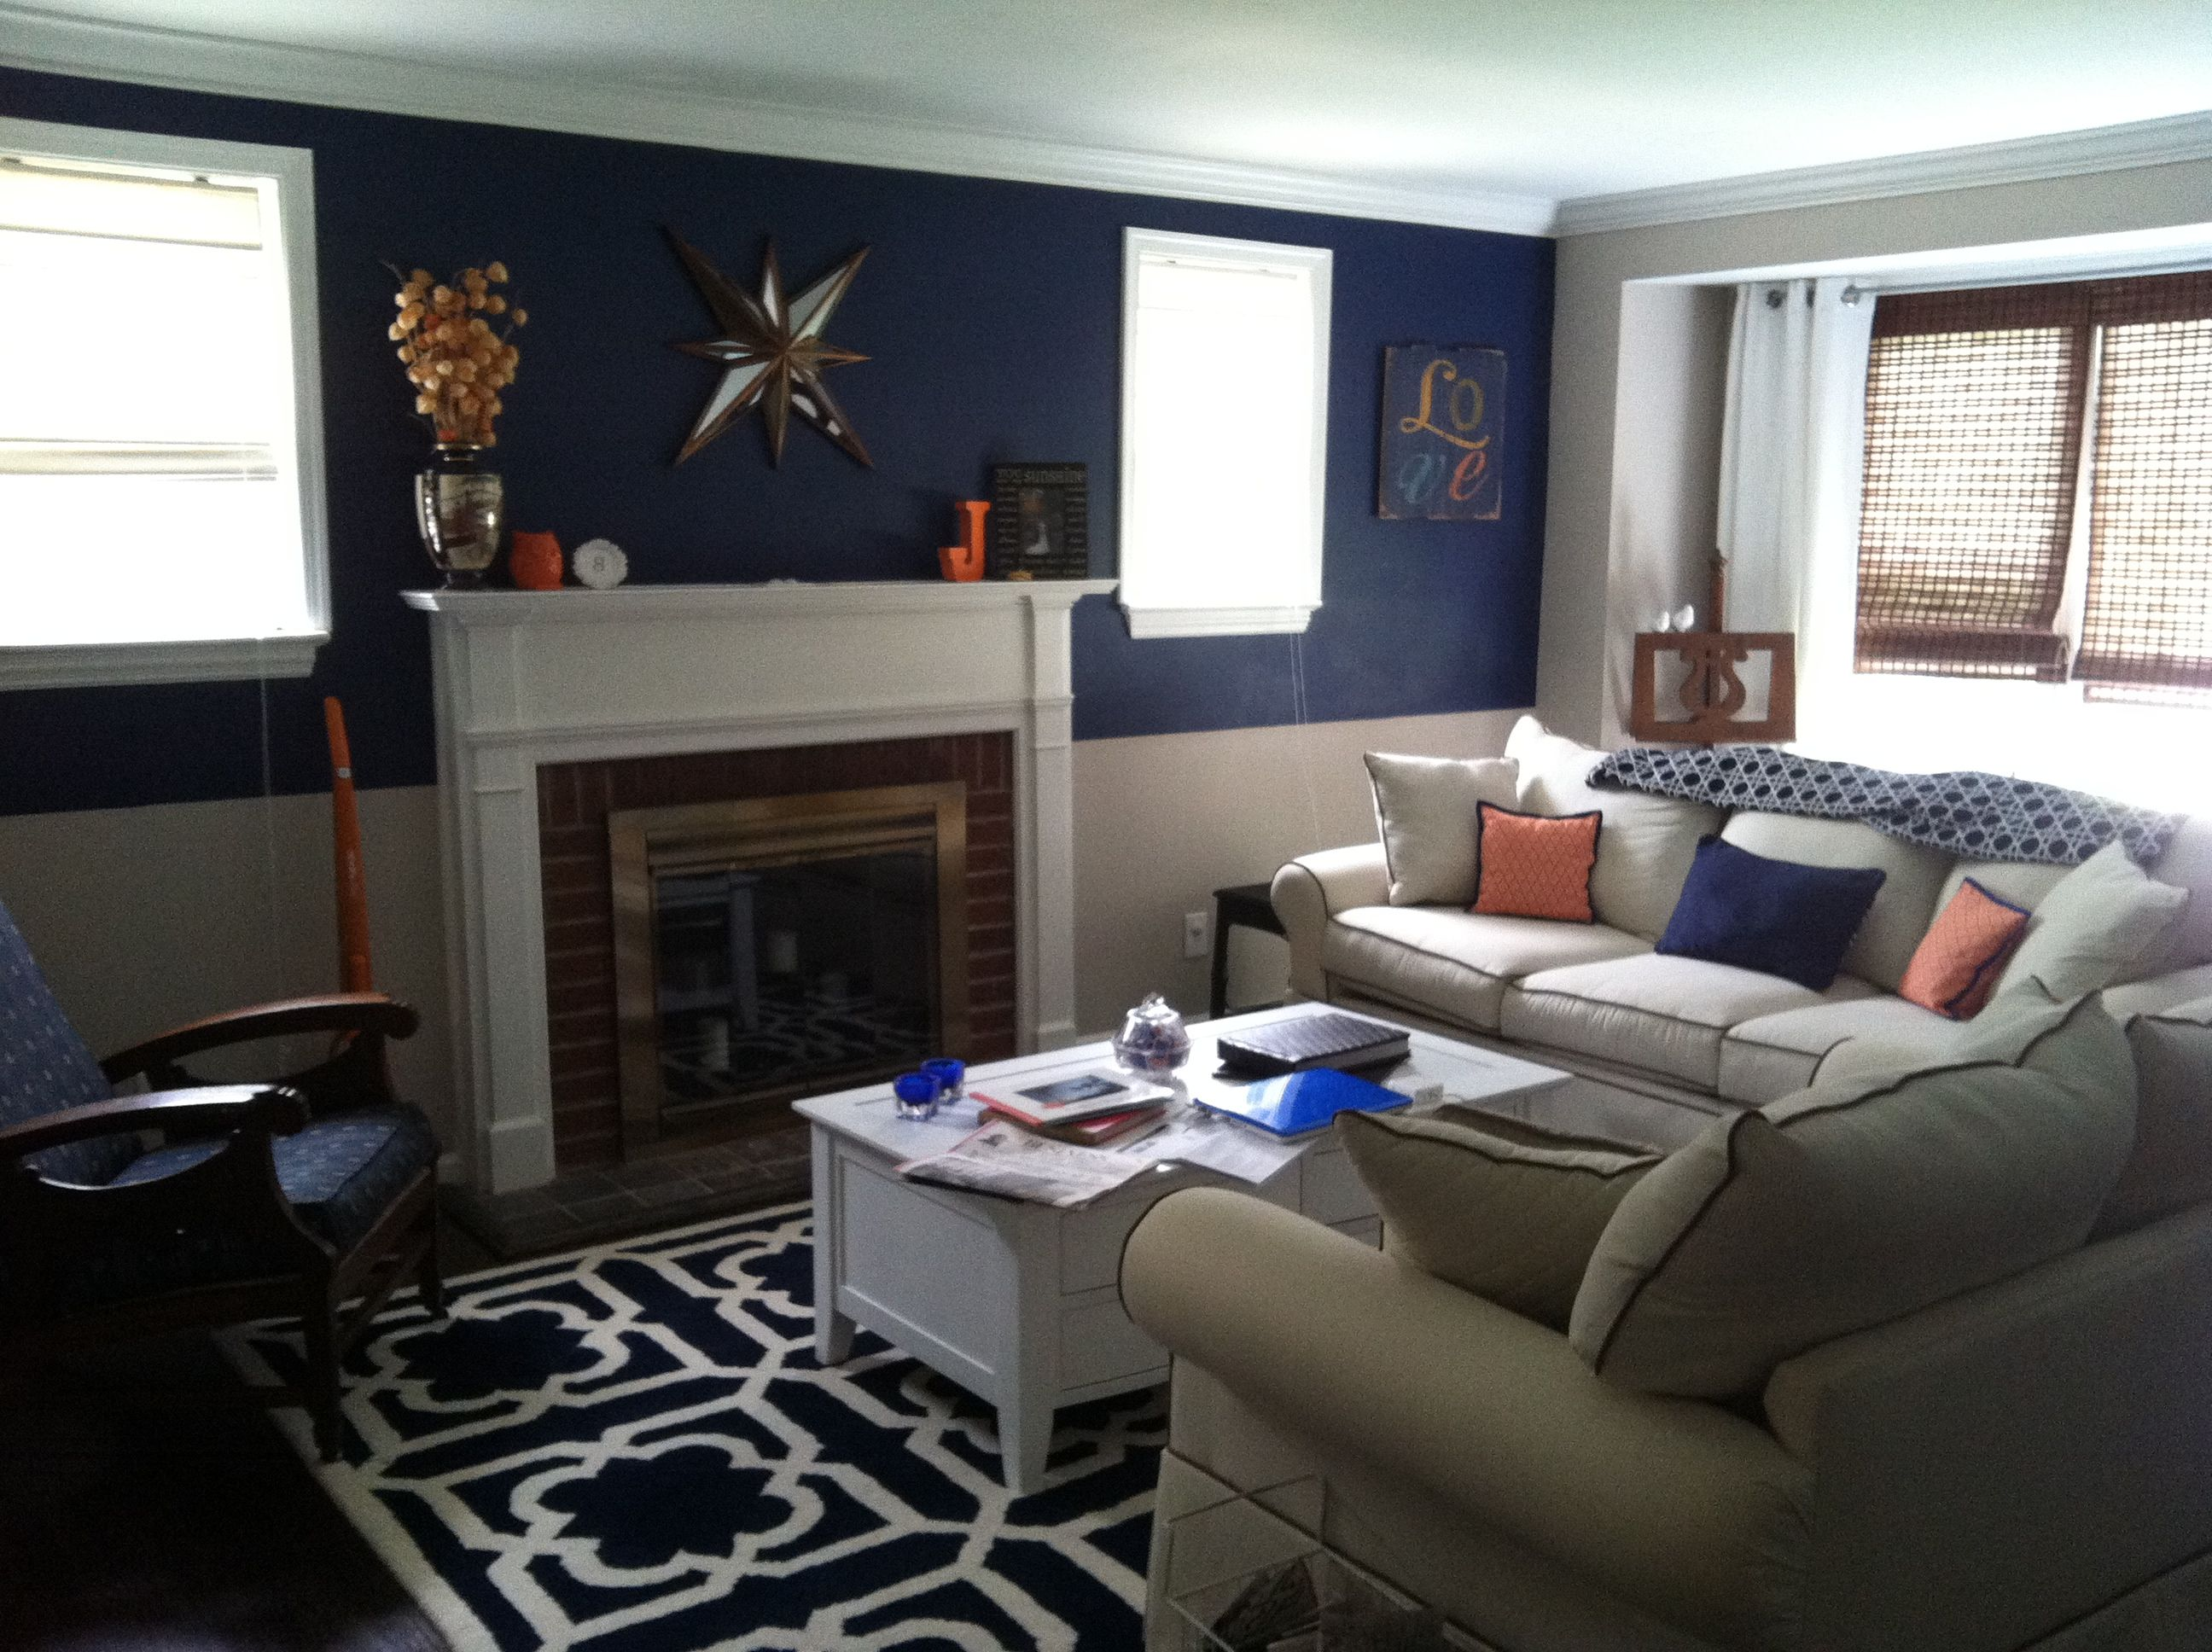 Orange and navy living room